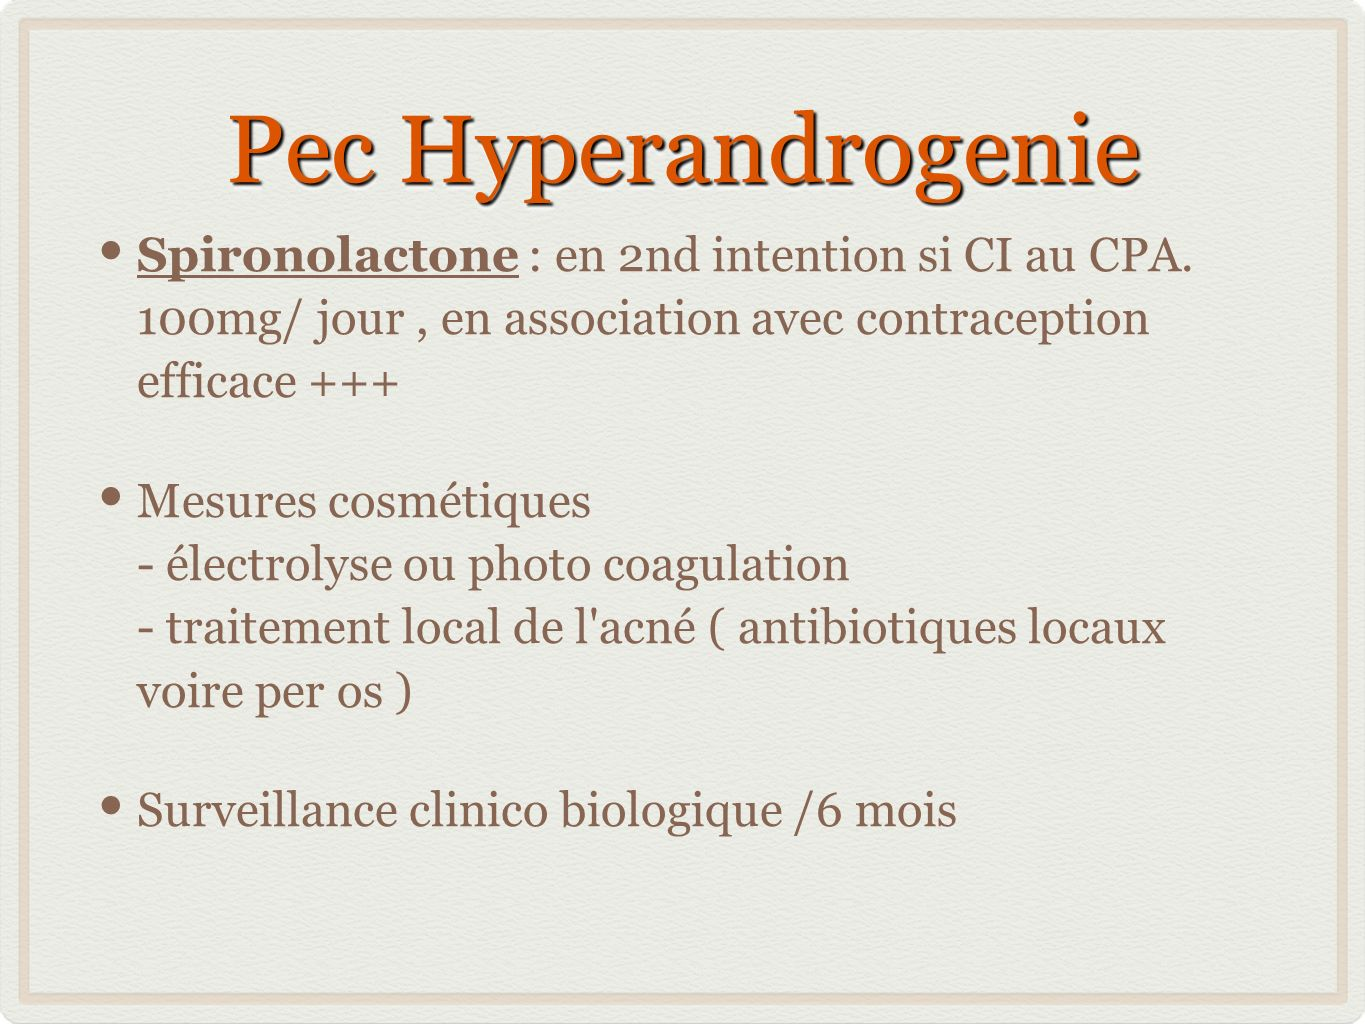 Pec Hyperandrogenie Spironolactone : en 2nd intention si CI au CPA. 100mg/ jour, en association avec contraception efficace +++ Mesures cosmétiques -